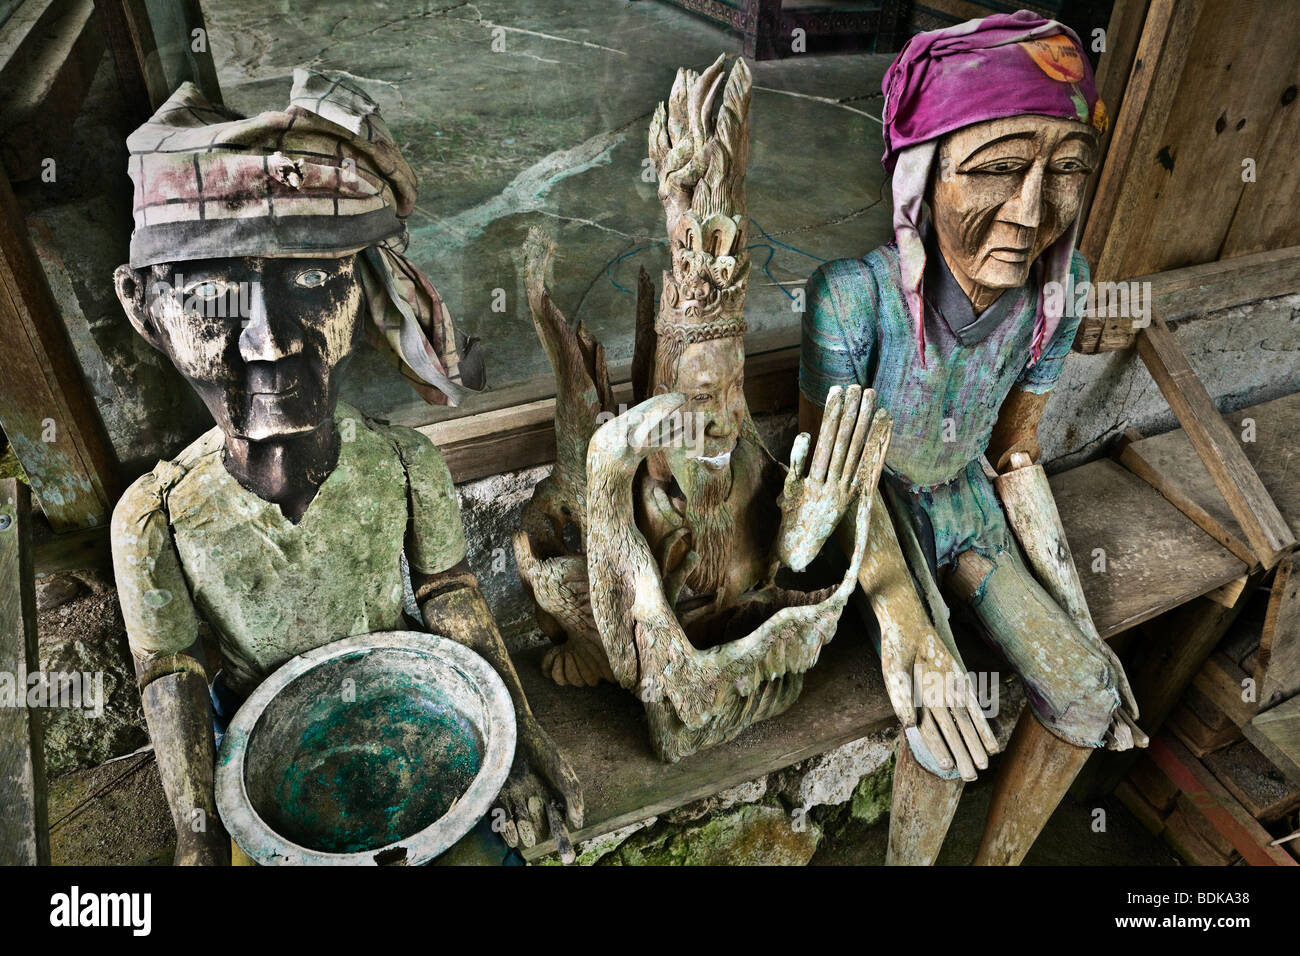 Indonesia, Sulawesi, Tana Toraja area, Kete Kesu' village, wooden effigies of the dead (known as tau tau) - Stock Image